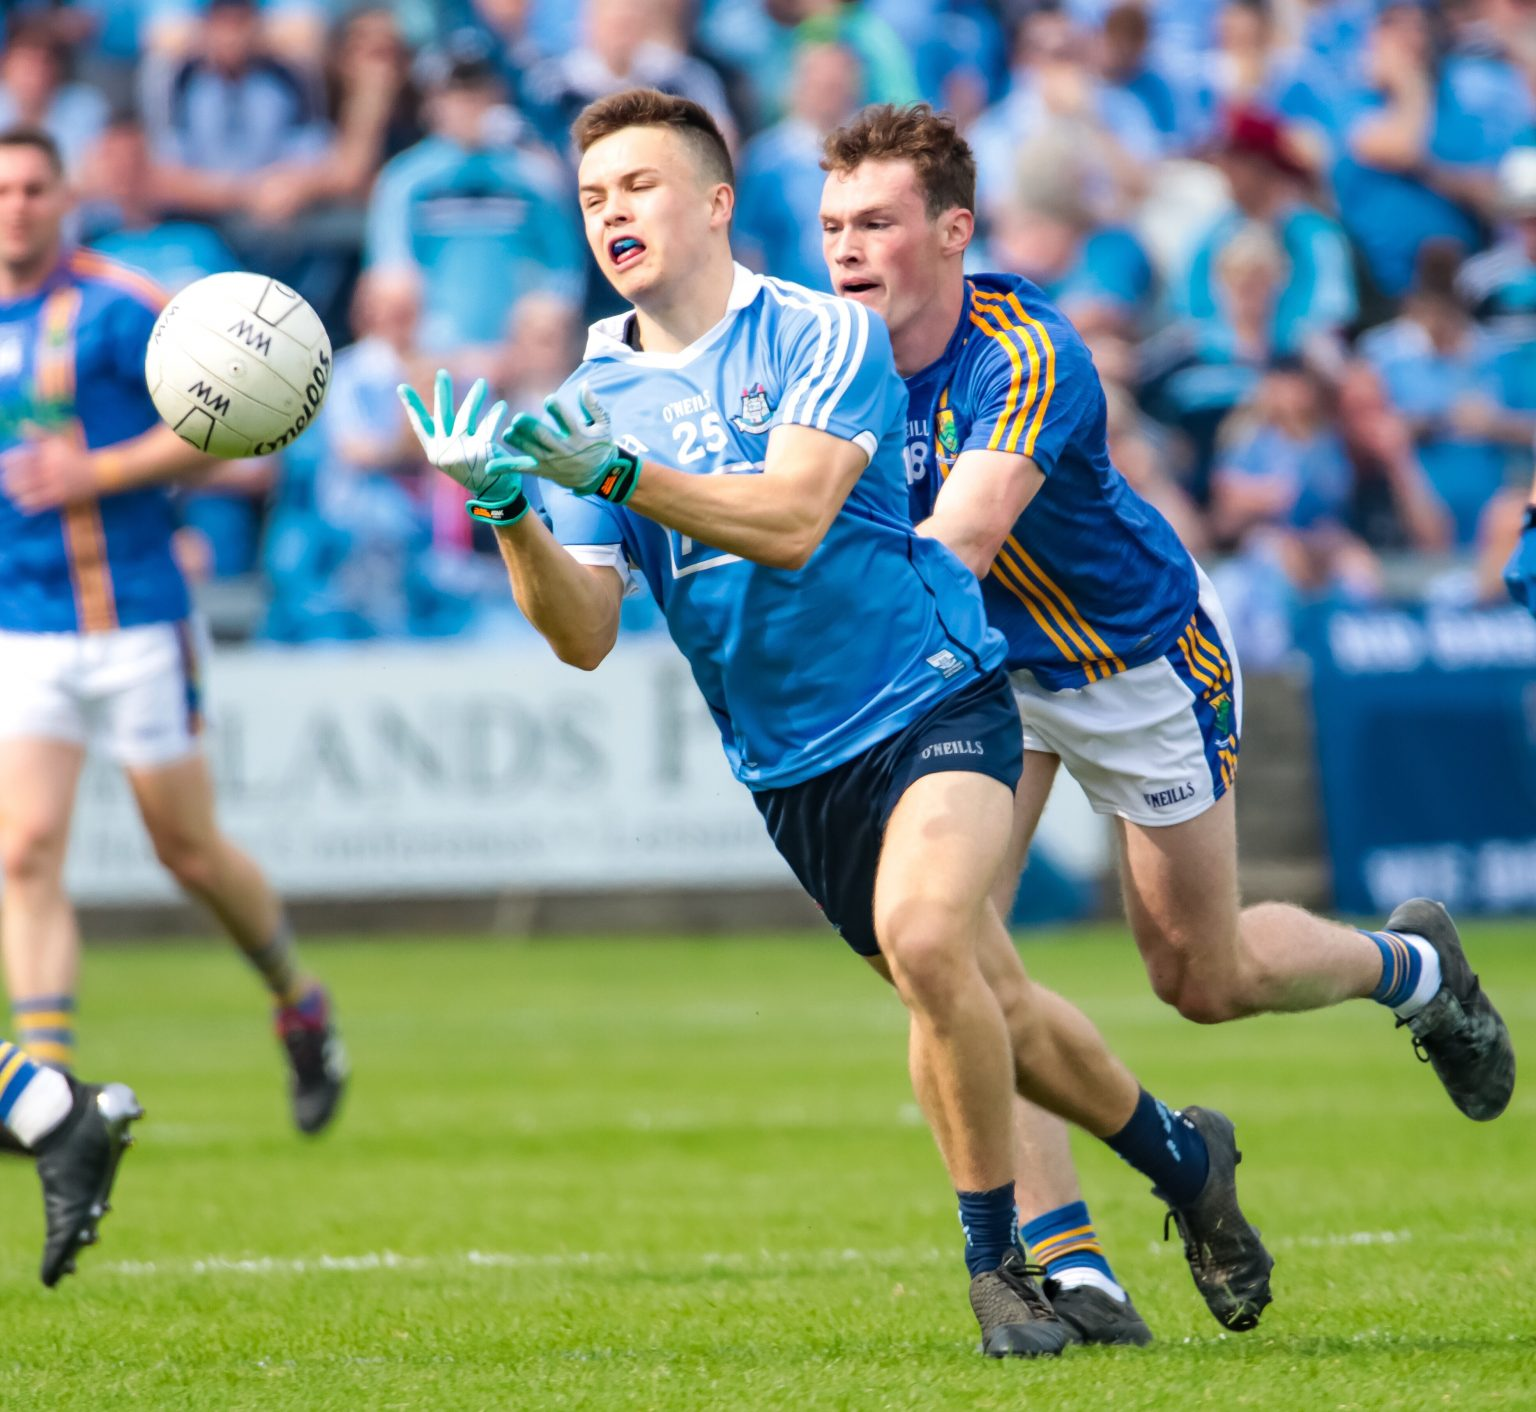 A dublin footballer in a sky blue jersey hand passes the white ball in Championship opener